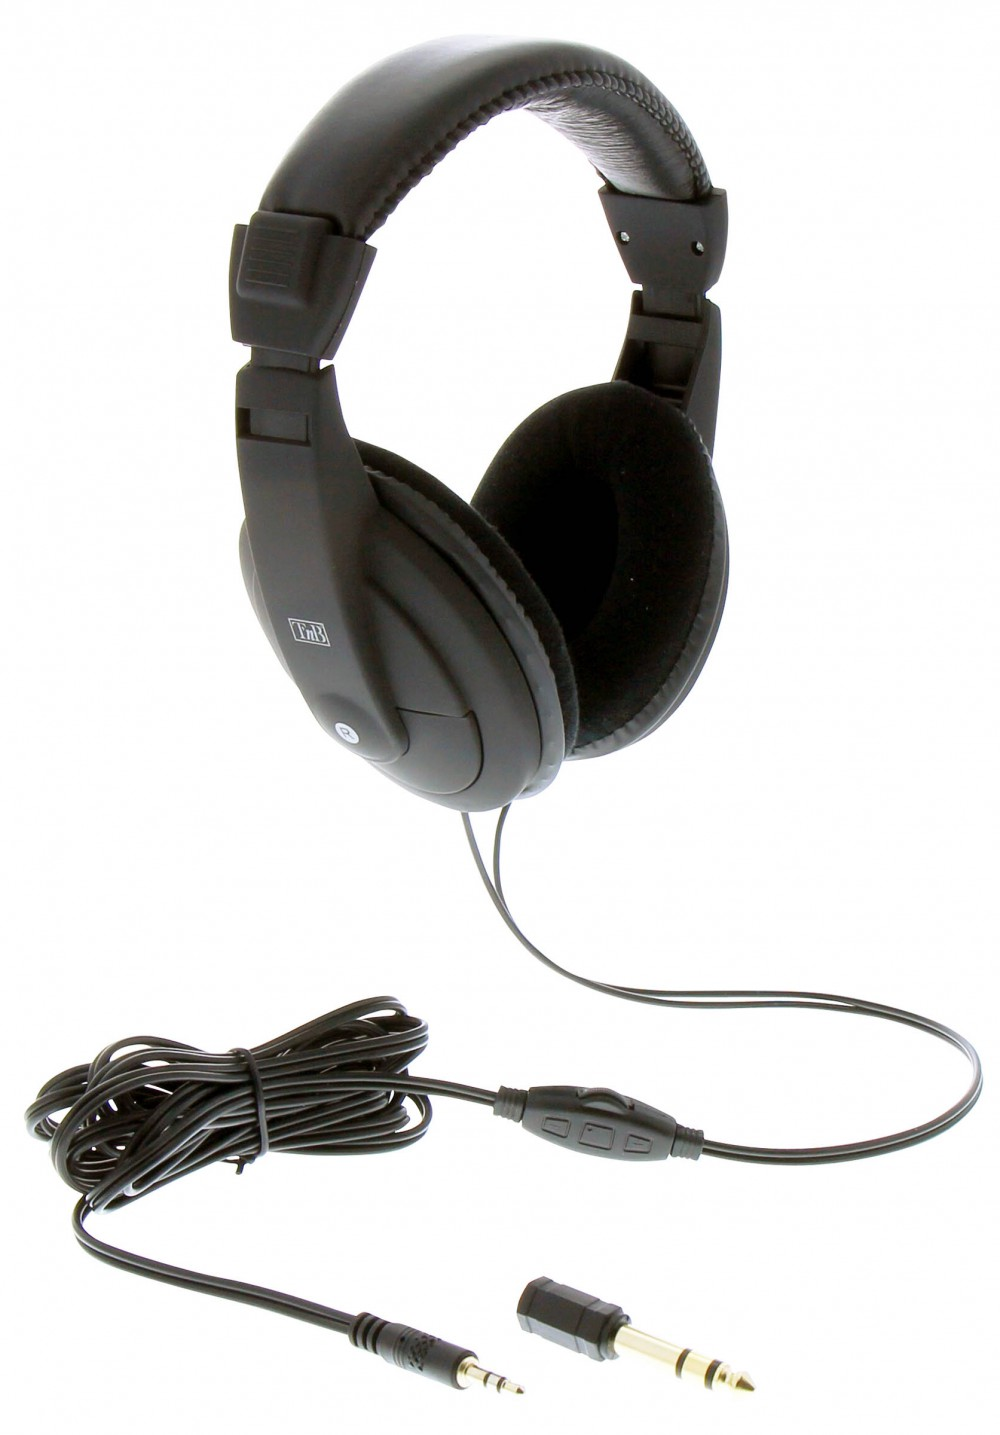 WIRED TV HEADPHONES + EXTENSION CABLE 4 M